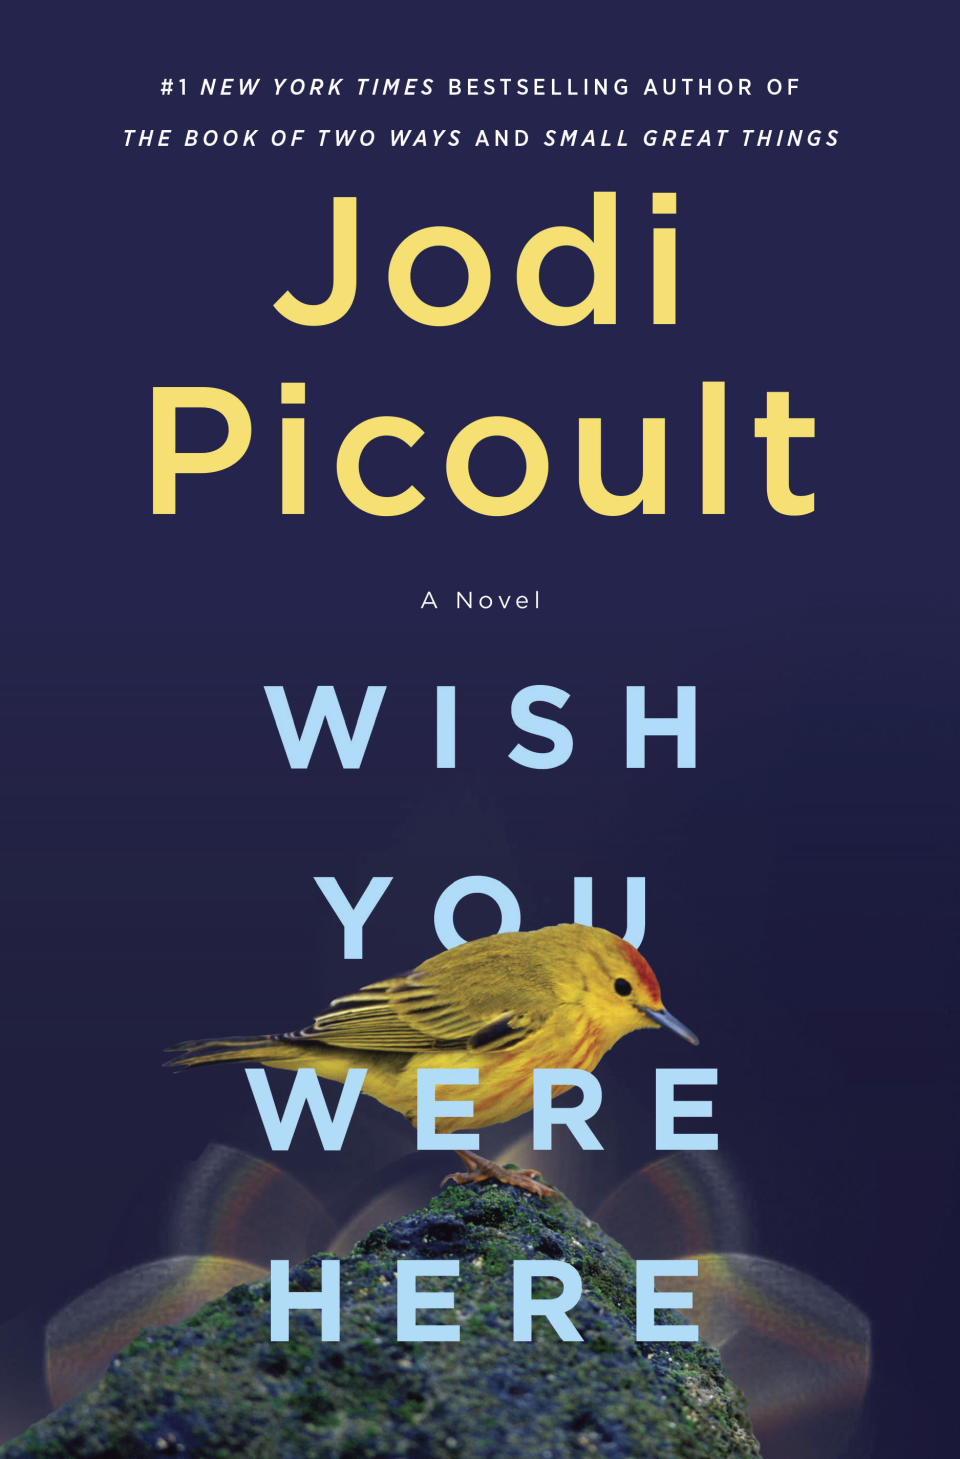 """This cover image released by Ballantine shows """"Wish You Were Here,"""" a novel by Jodi Picoult, releasing Nov. 30. (Ballantine via AP)"""